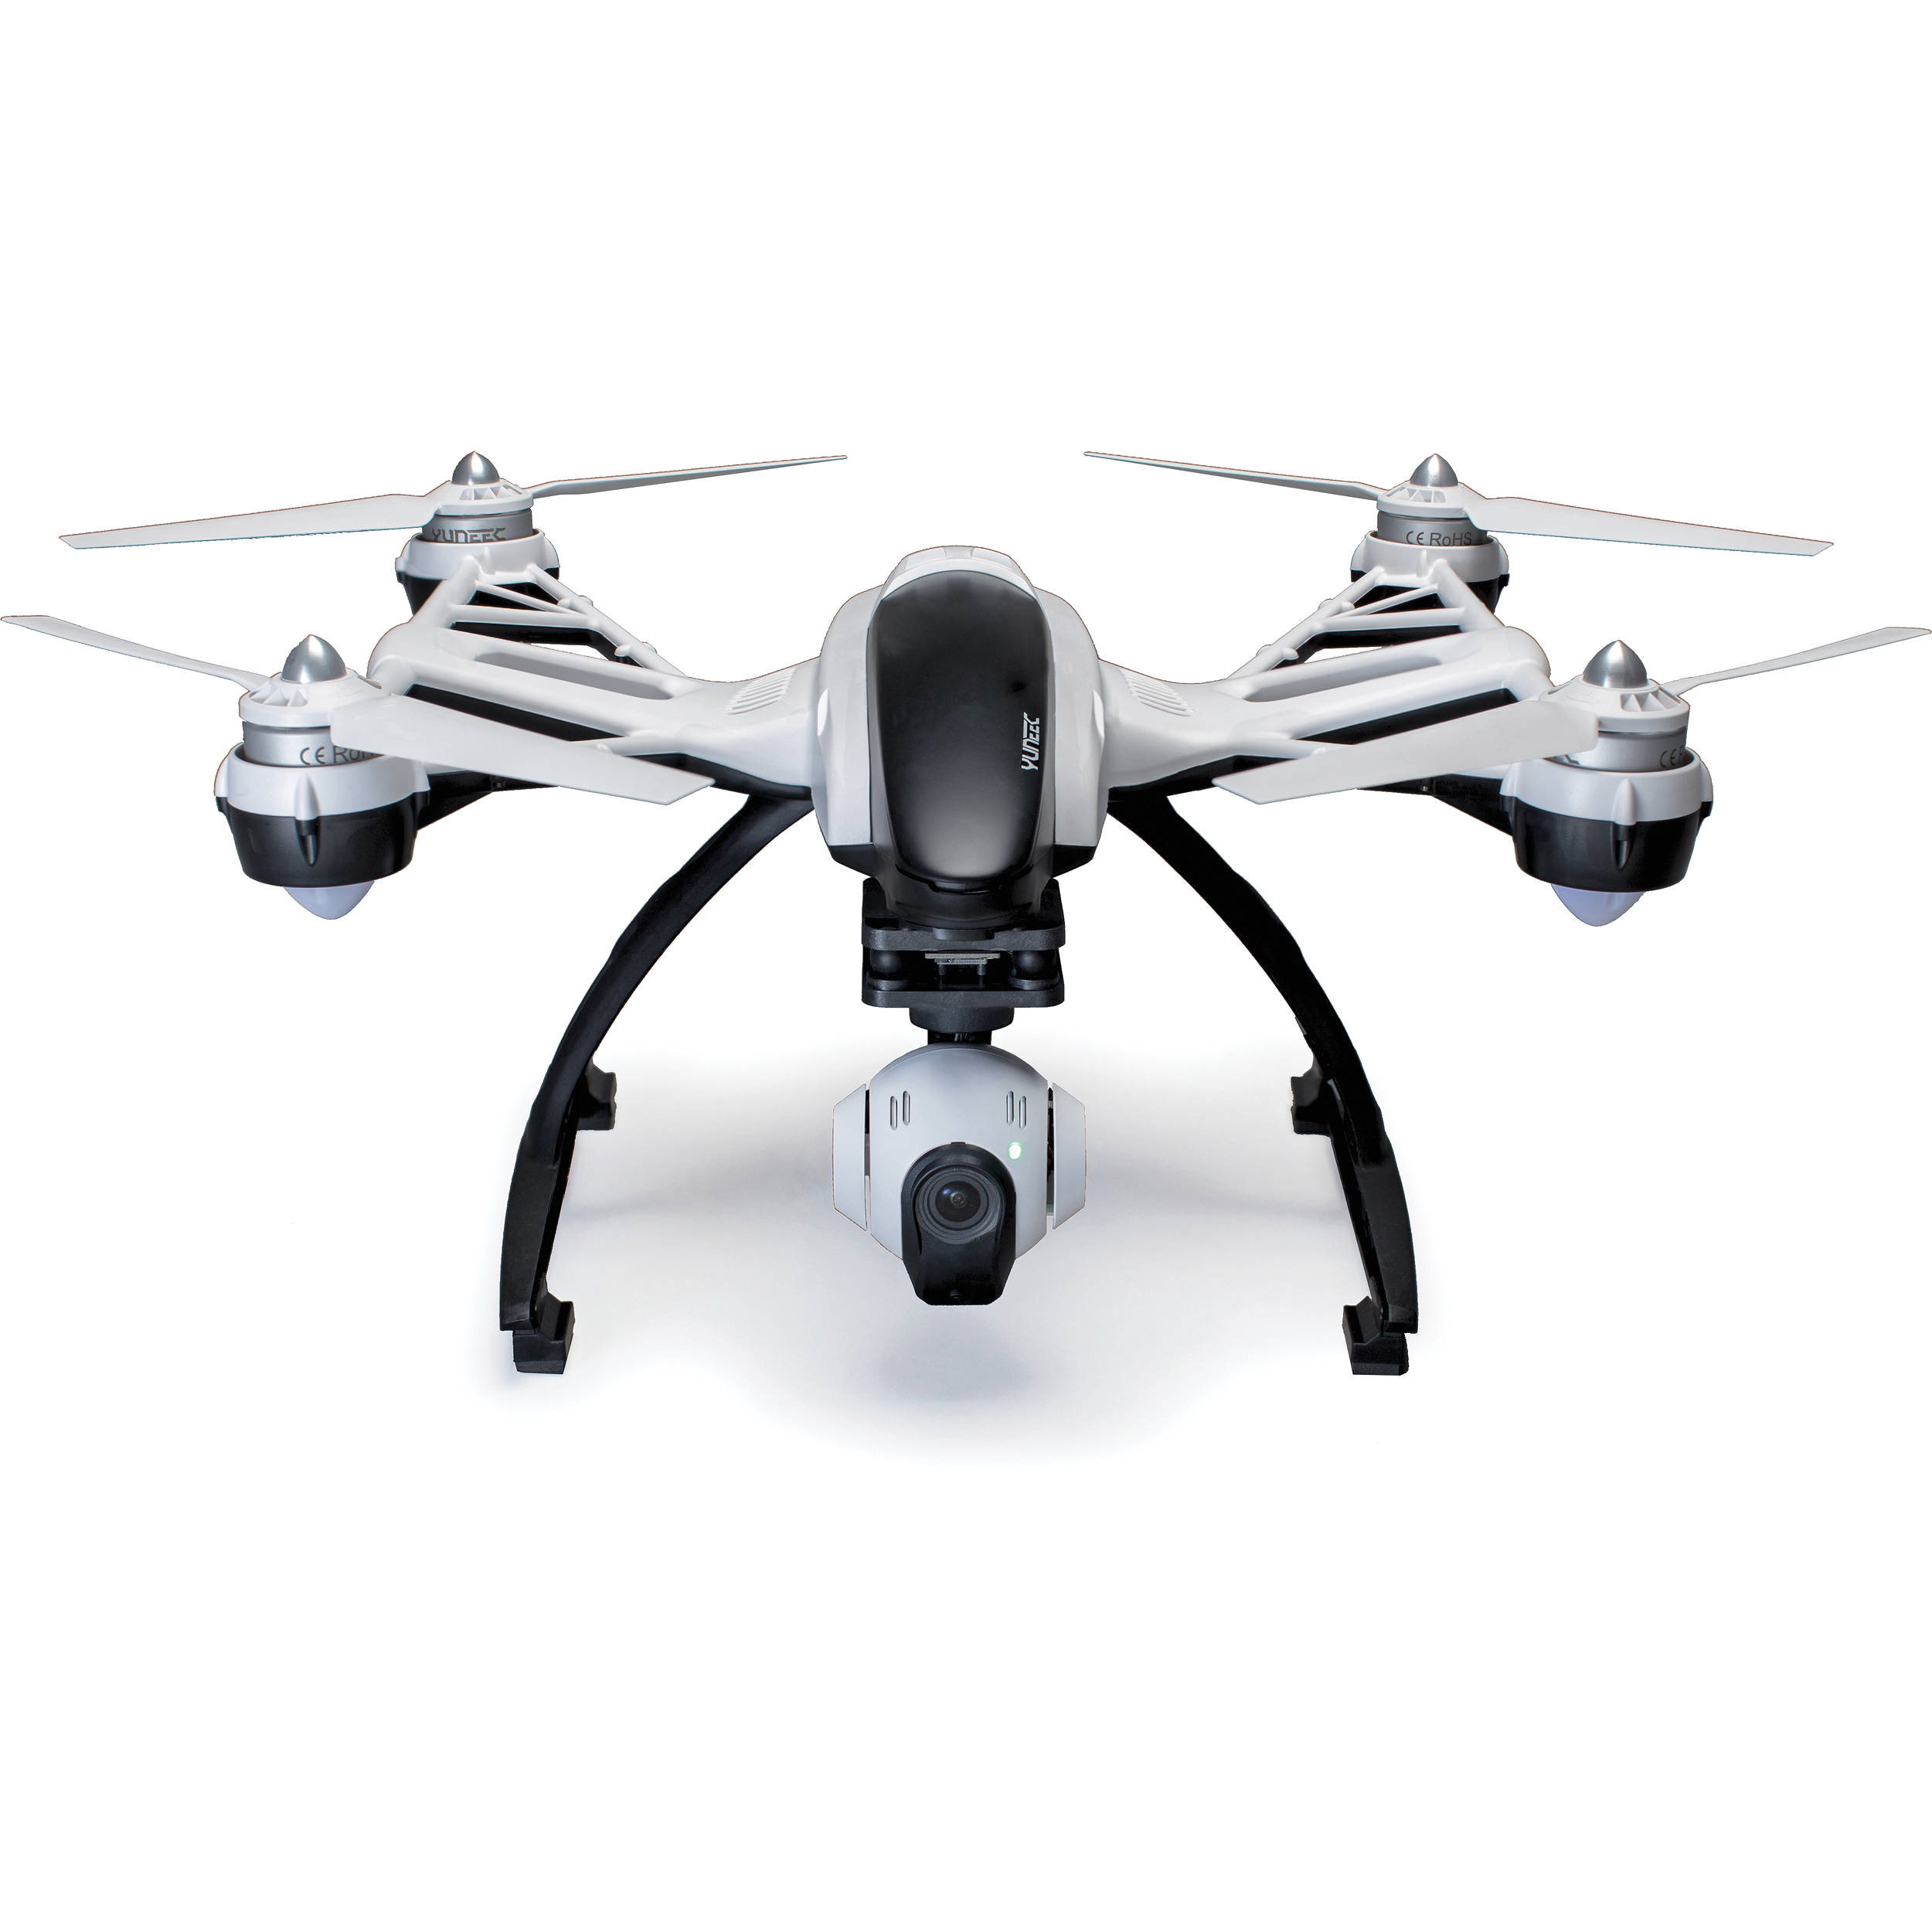 YUNEEC TYPHOON Q500+ AIRCRAFT DRIVERS FOR WINDOWS 10